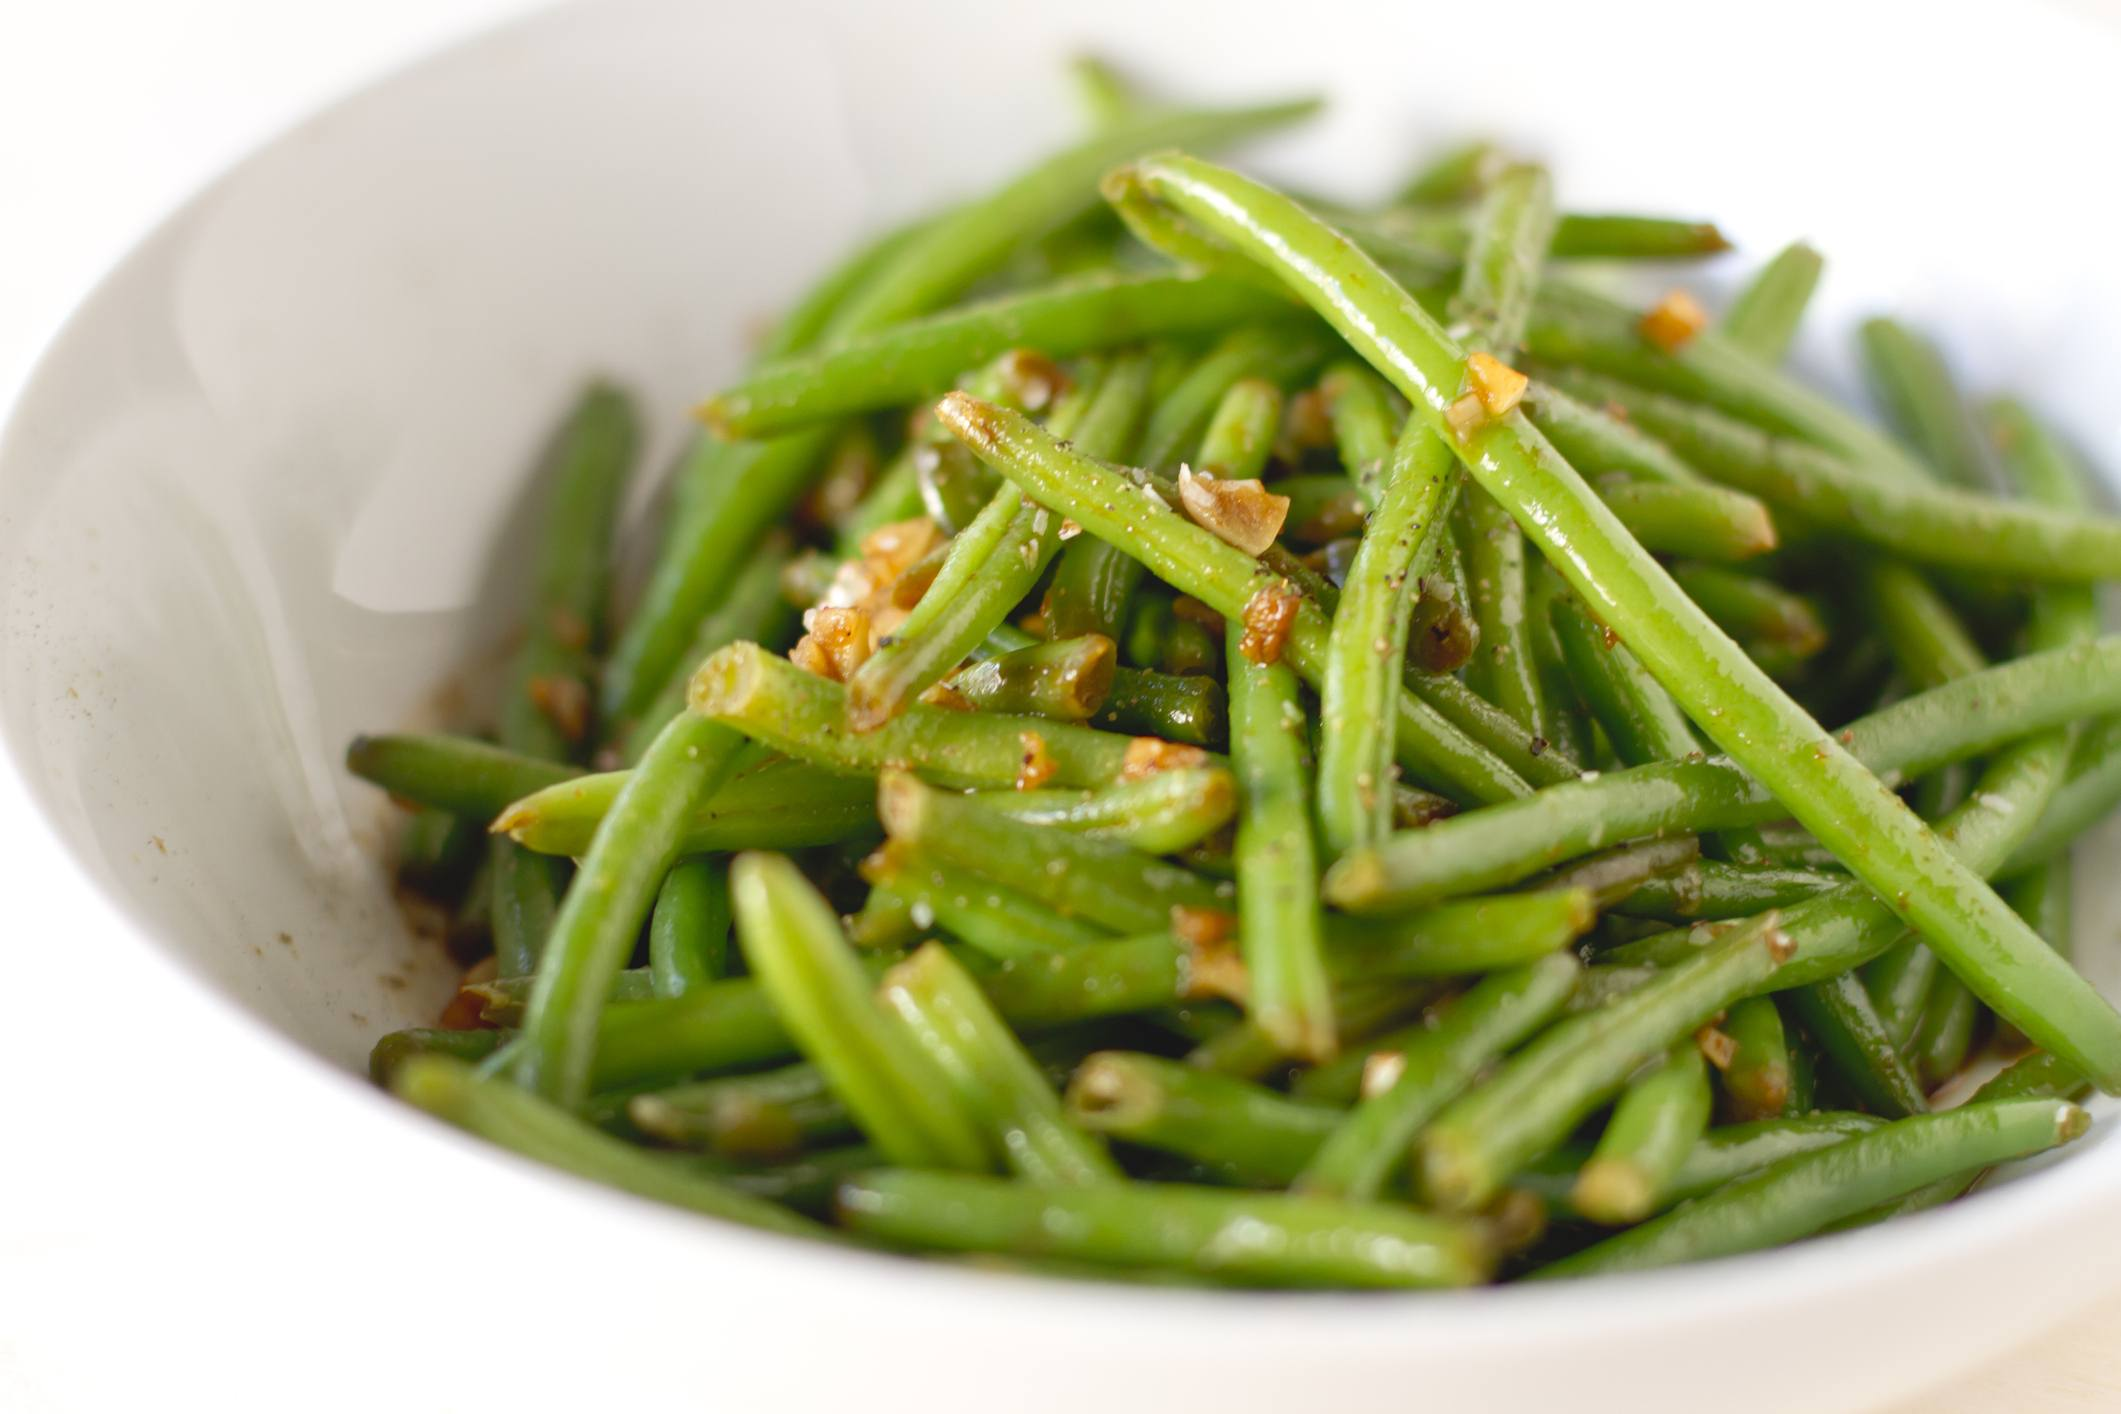 Spicy haricot vert green beans in a bowl.